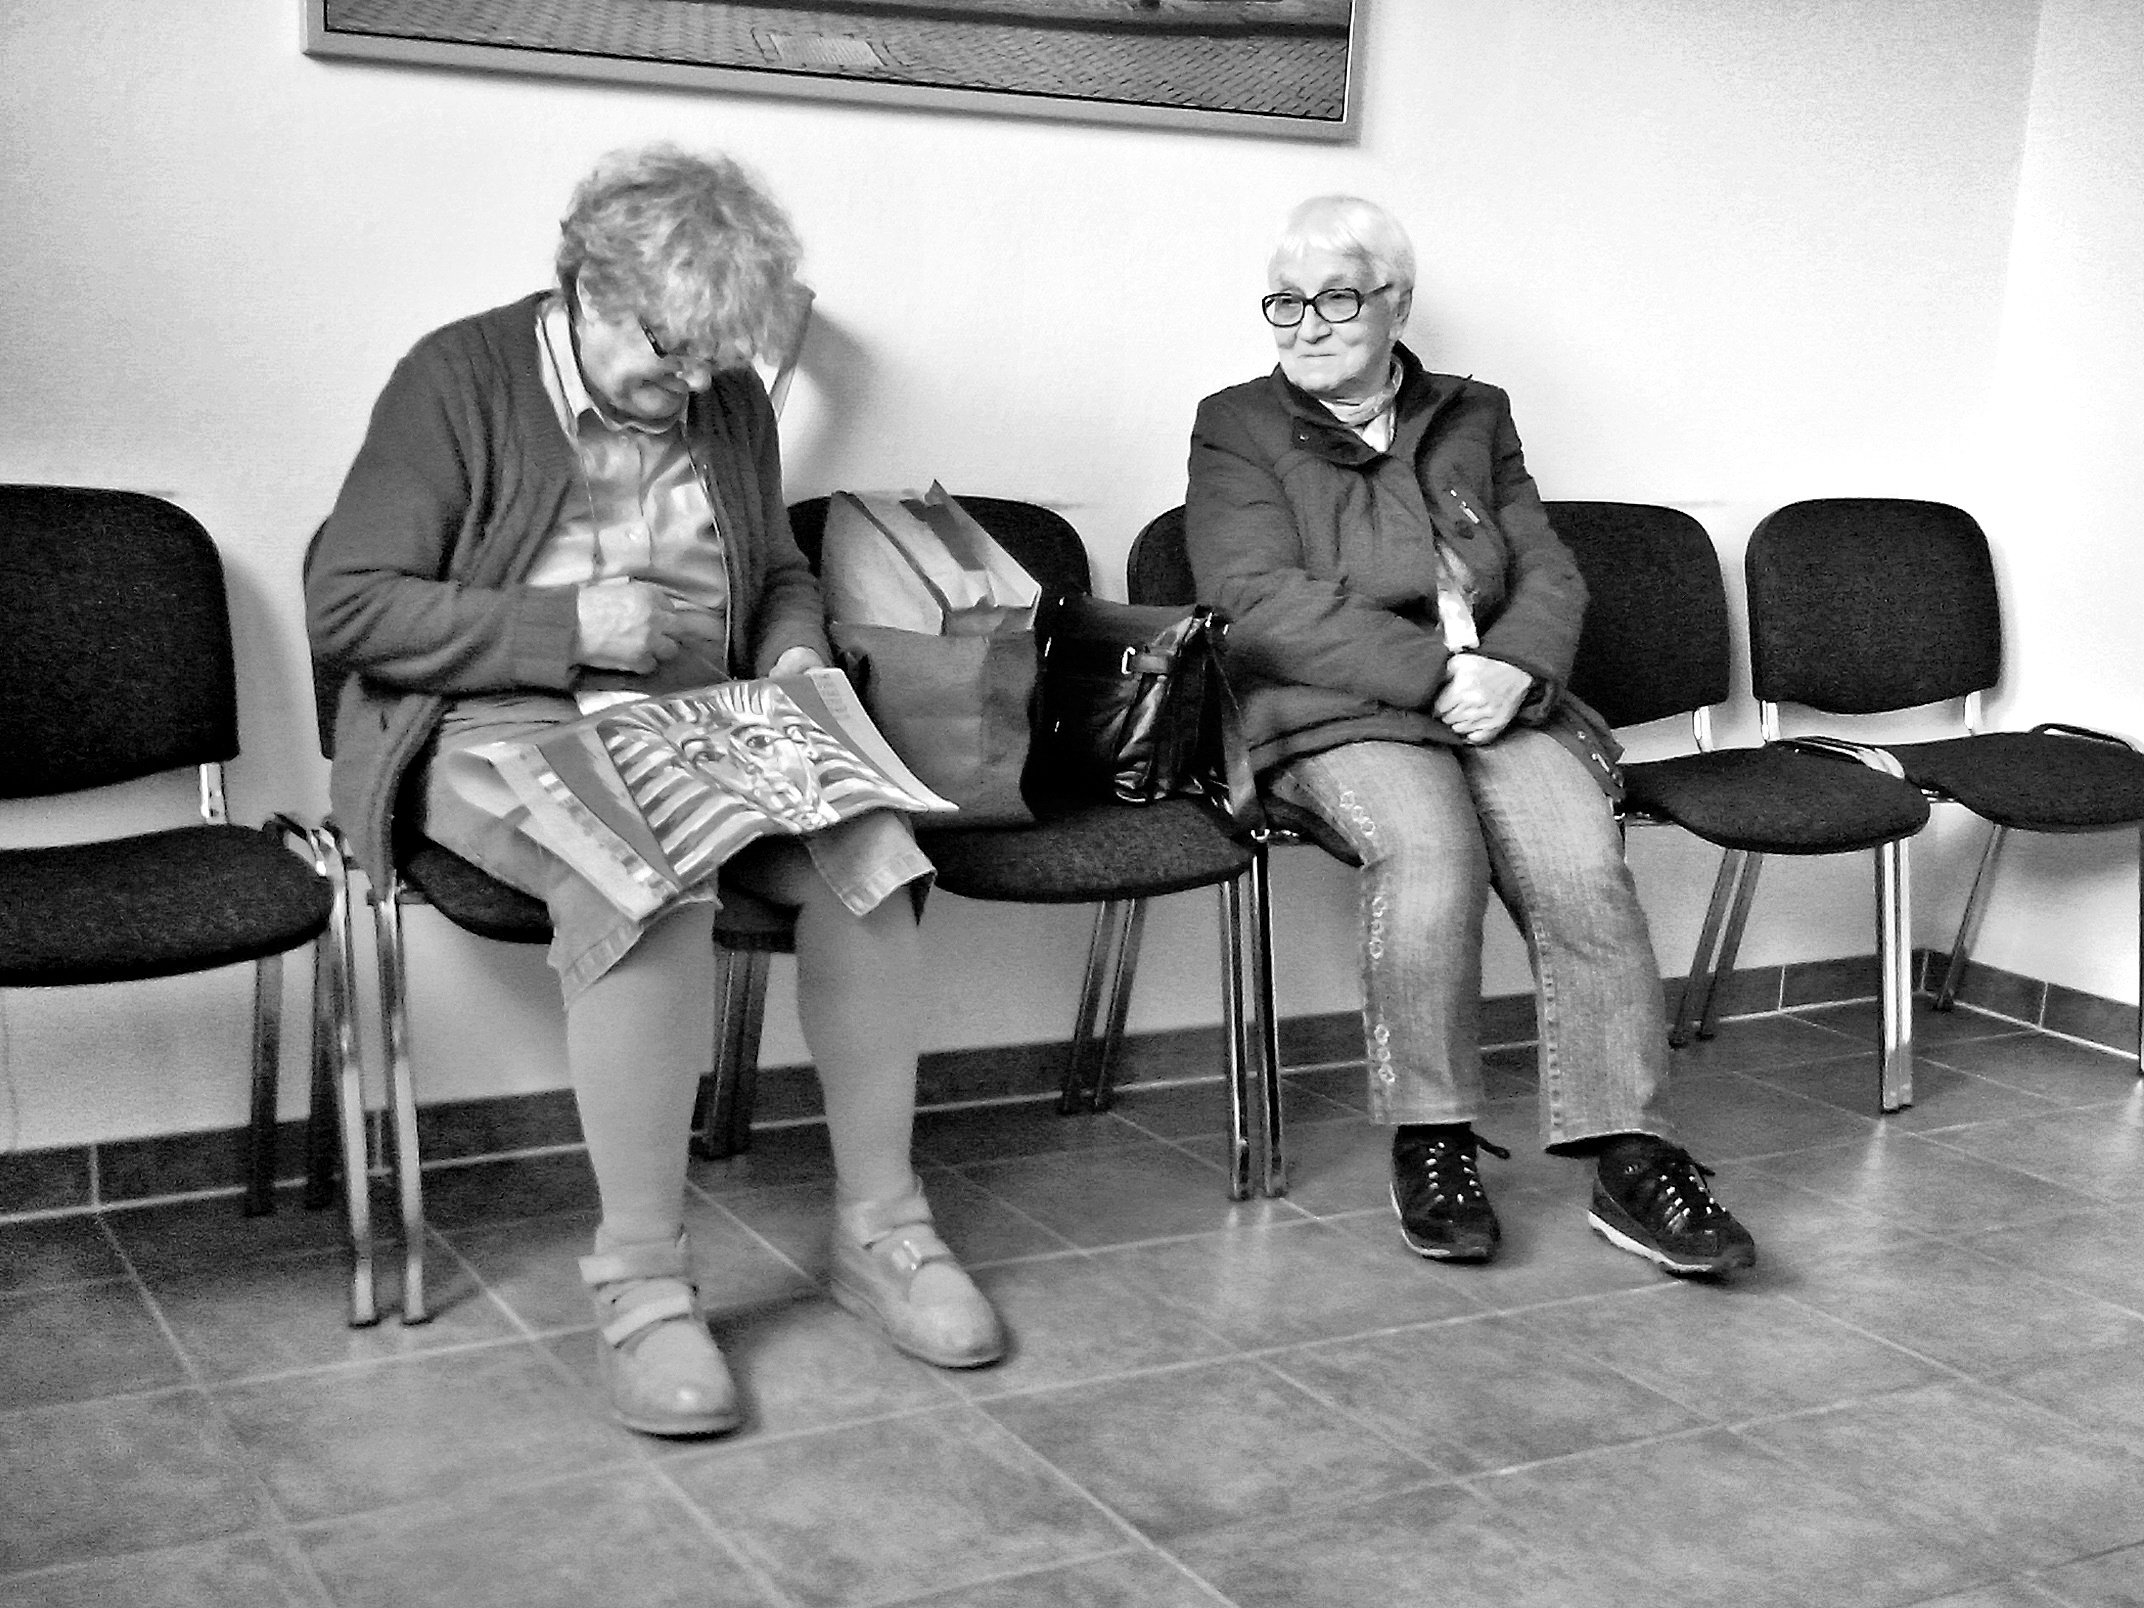 2 grandmas at the doctor, wildau 2015